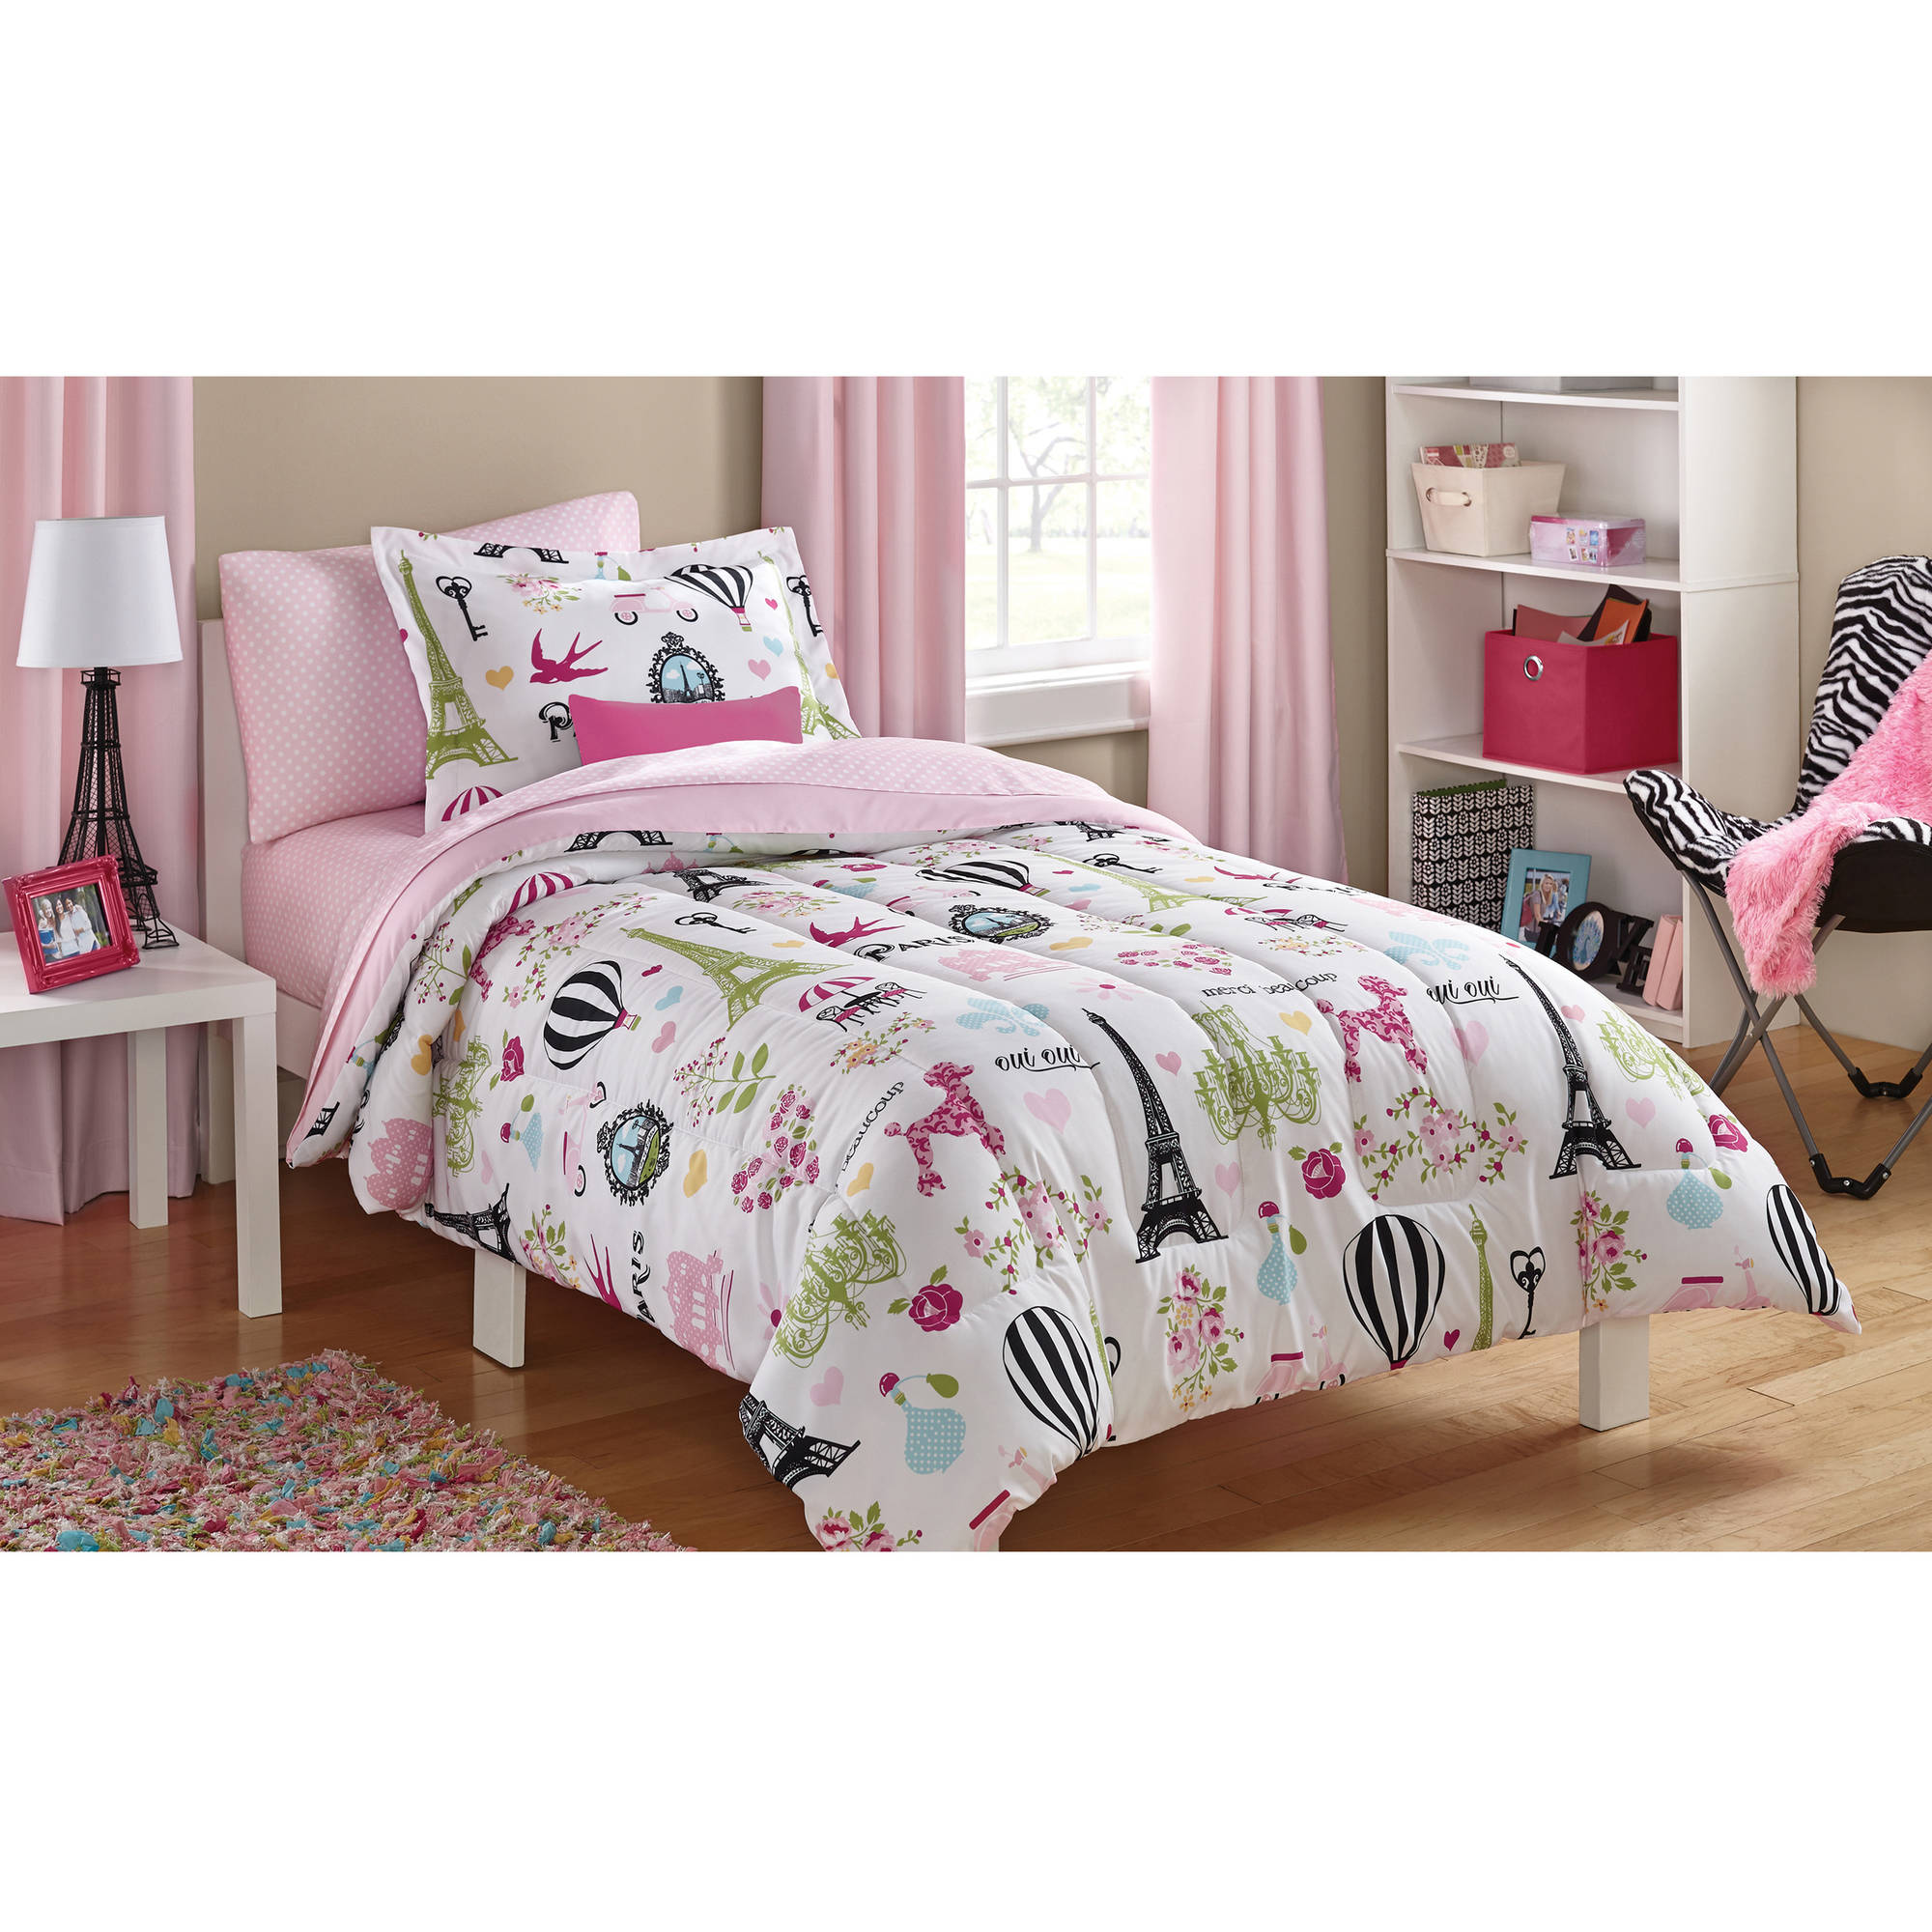 Mainstays Kids Paris Bed In A Bag Bedding Set   Walmart.com